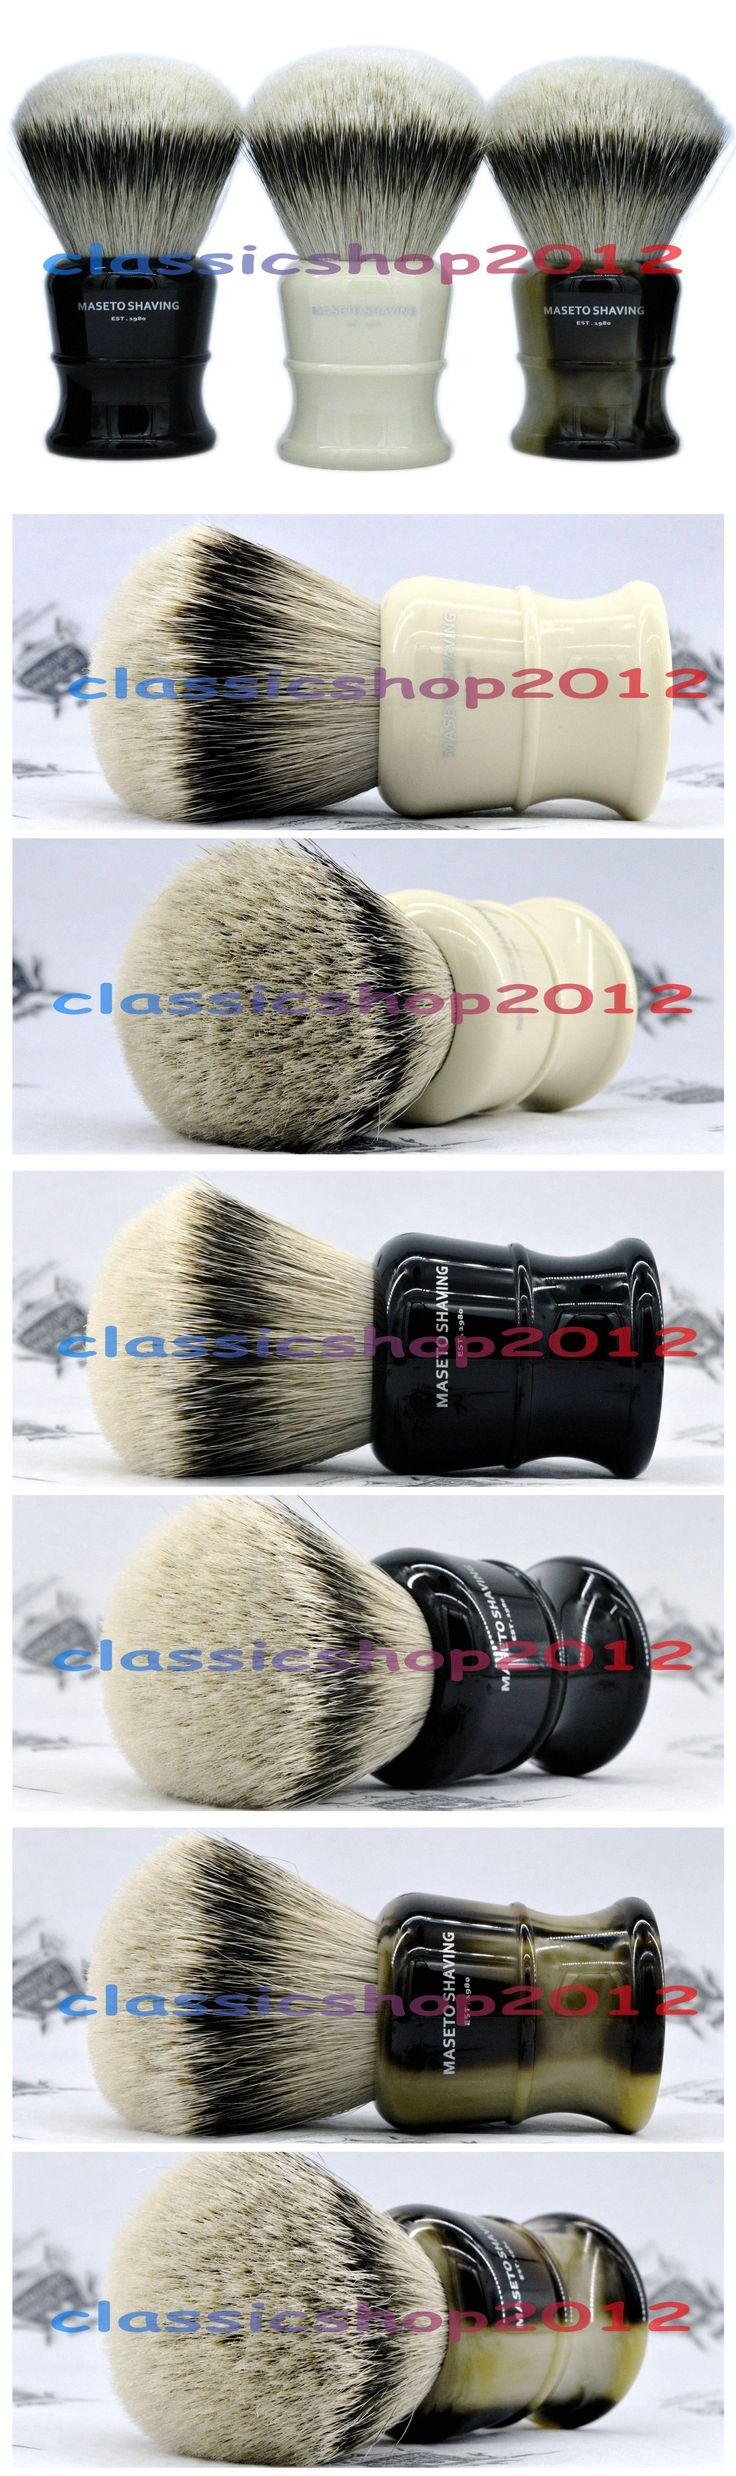 Shaving Brushes and Mugs: Ms - Fan Shape 100% Silvertip Badger Shaving Brush And Classic Handle 30Mm Knot -> BUY IT NOW ONLY: $56.99 on eBay!